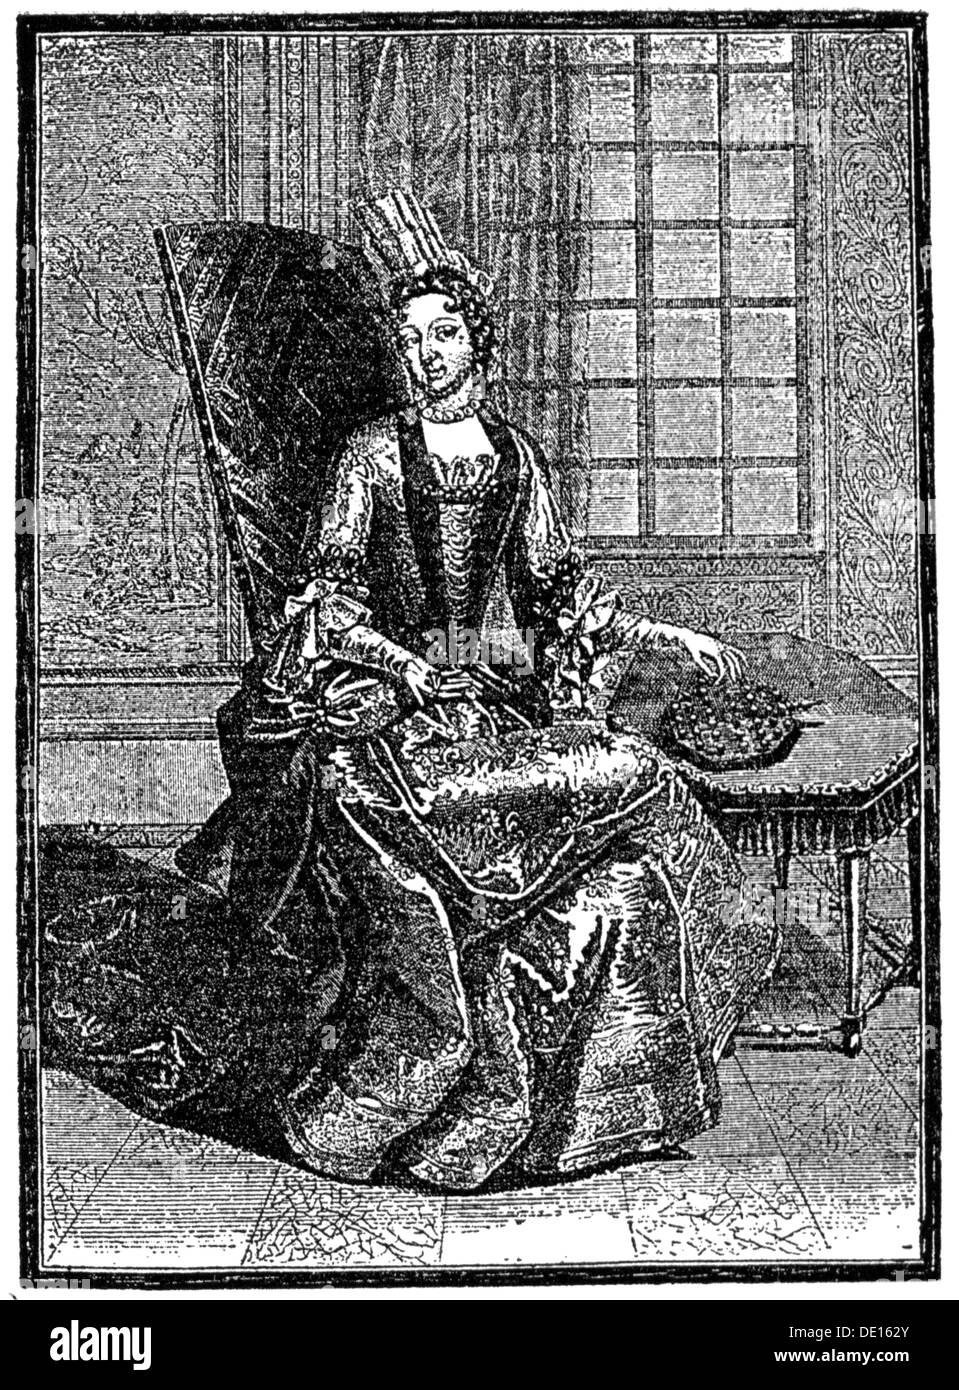 Rohan-Chabot, Anne de, 1648 - 4.2.1709, French lady-in-waiting, full length, playing solitaire, copper engraving by Claude Auguste Berey (circa 1680 - circa 1730), 1697, Artist's Copyright has not to be cleared - Stock Image